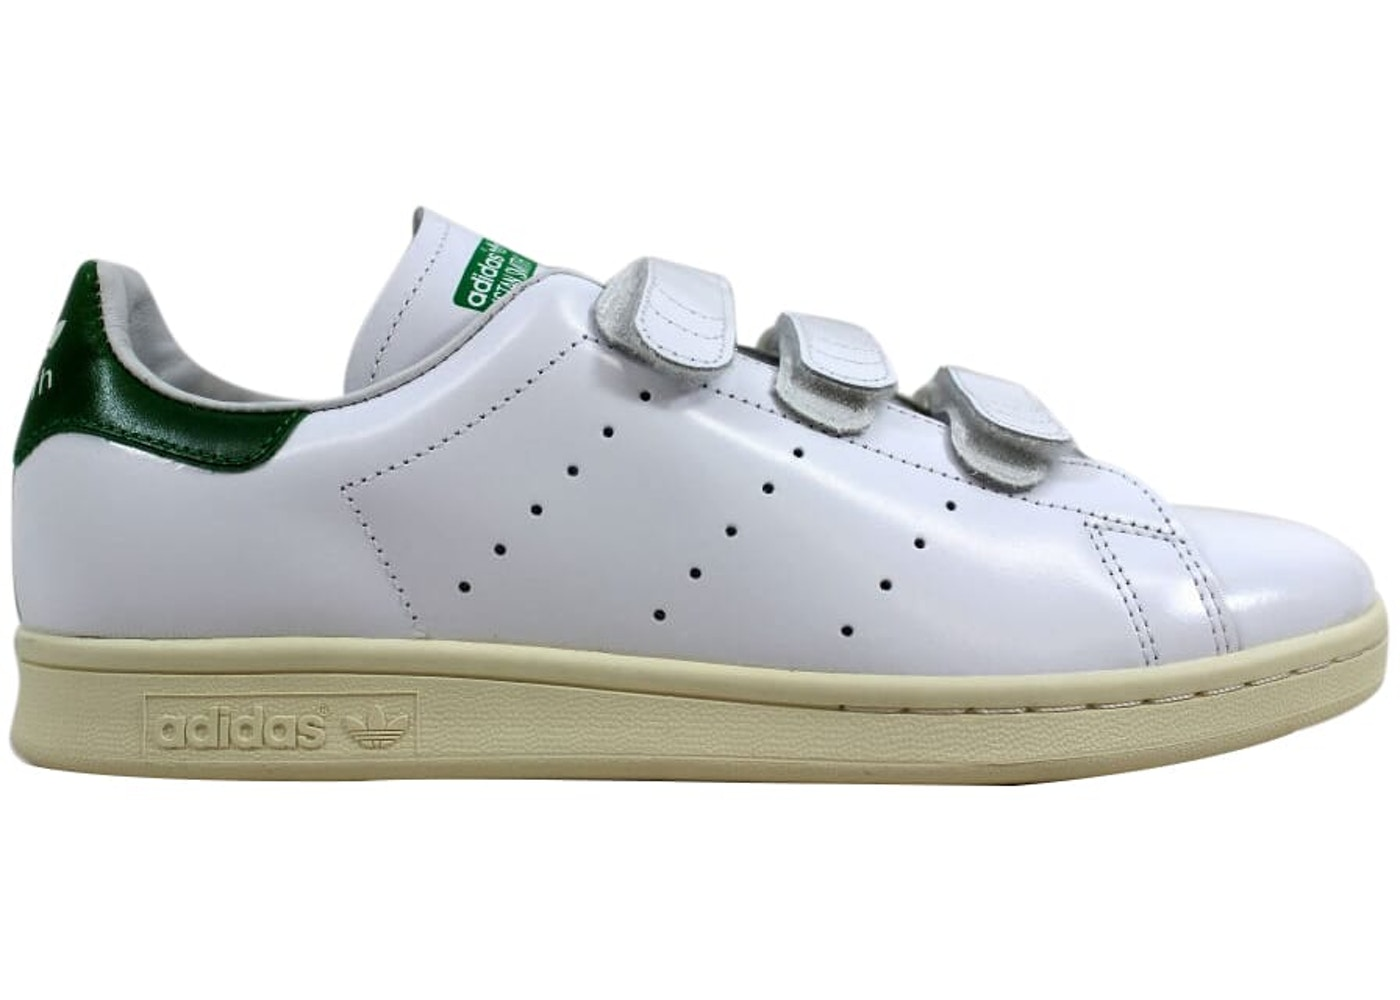 low cost 5d5e9 30269 adidas Stan Smith CF Nigo White - B26000